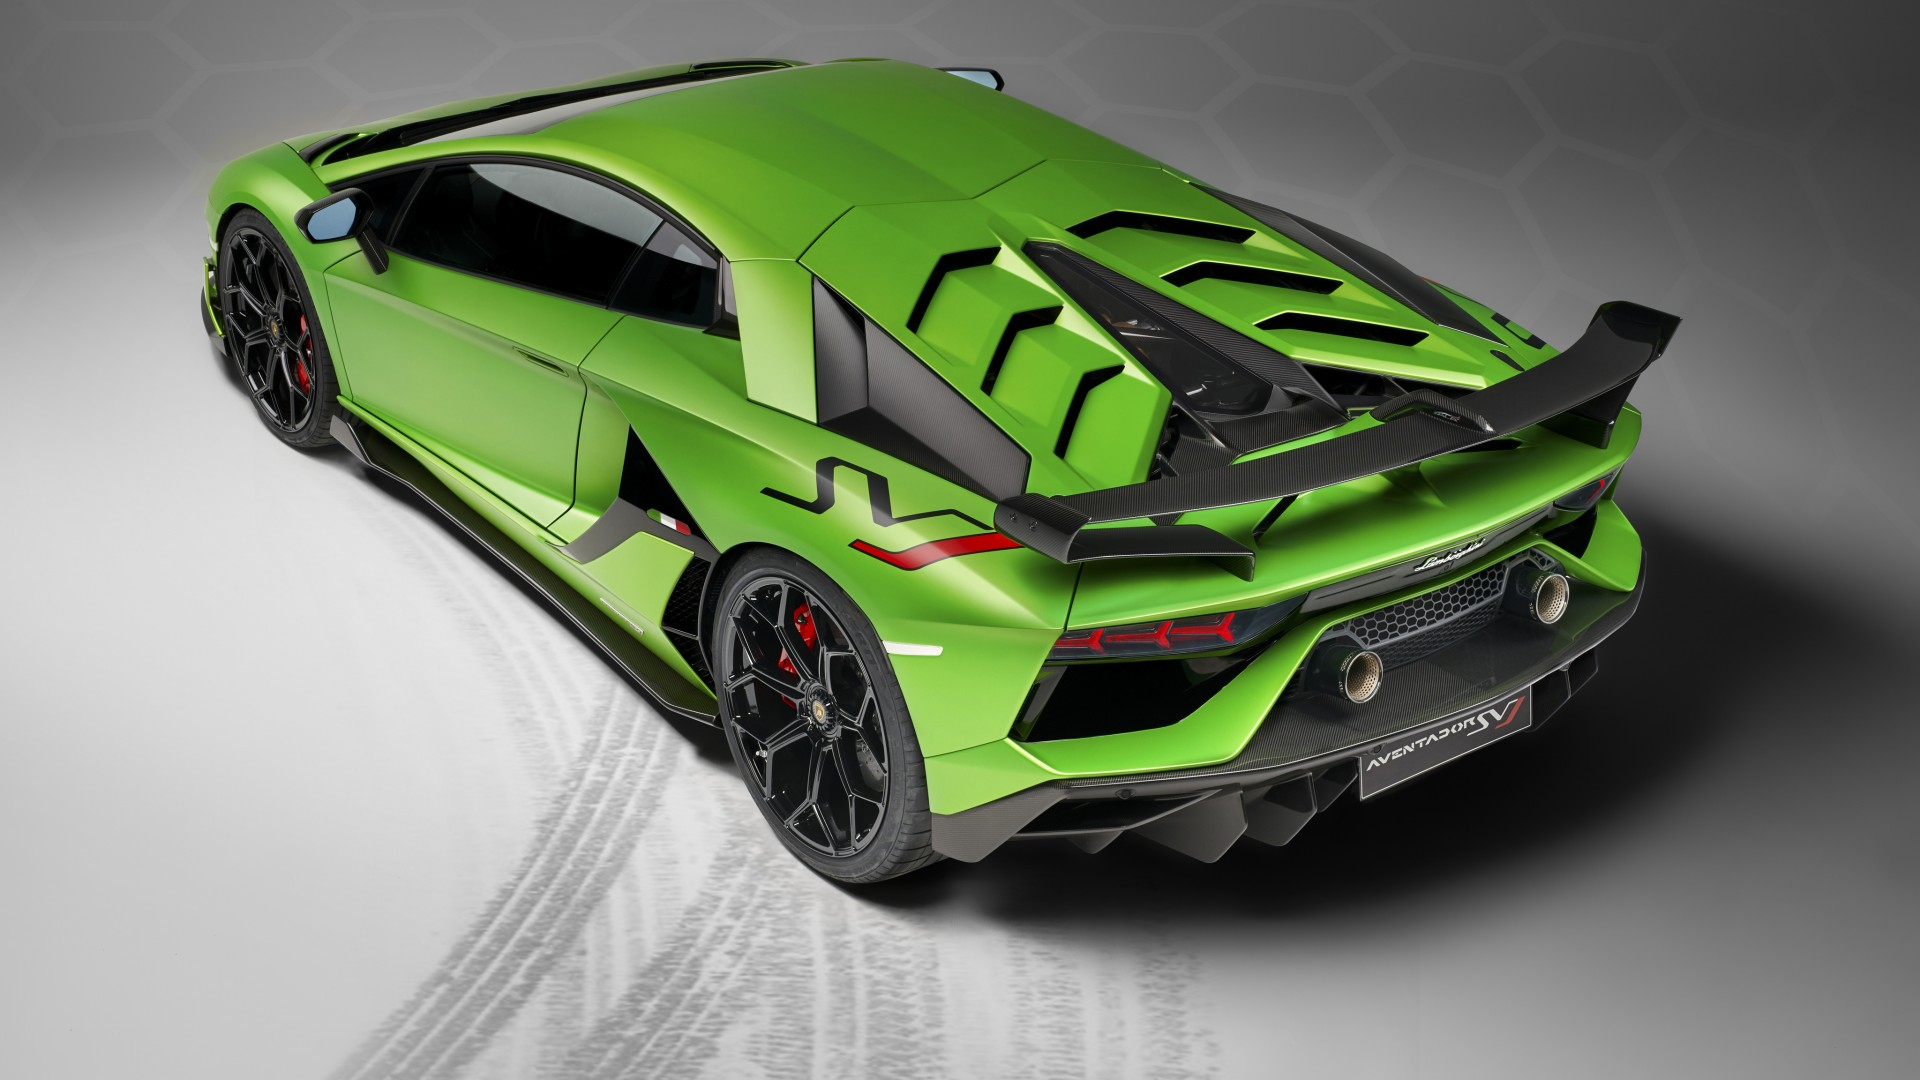 2019 Lamborghini Aventador SVJ 4K 6 Wallpaper | HD Car ...